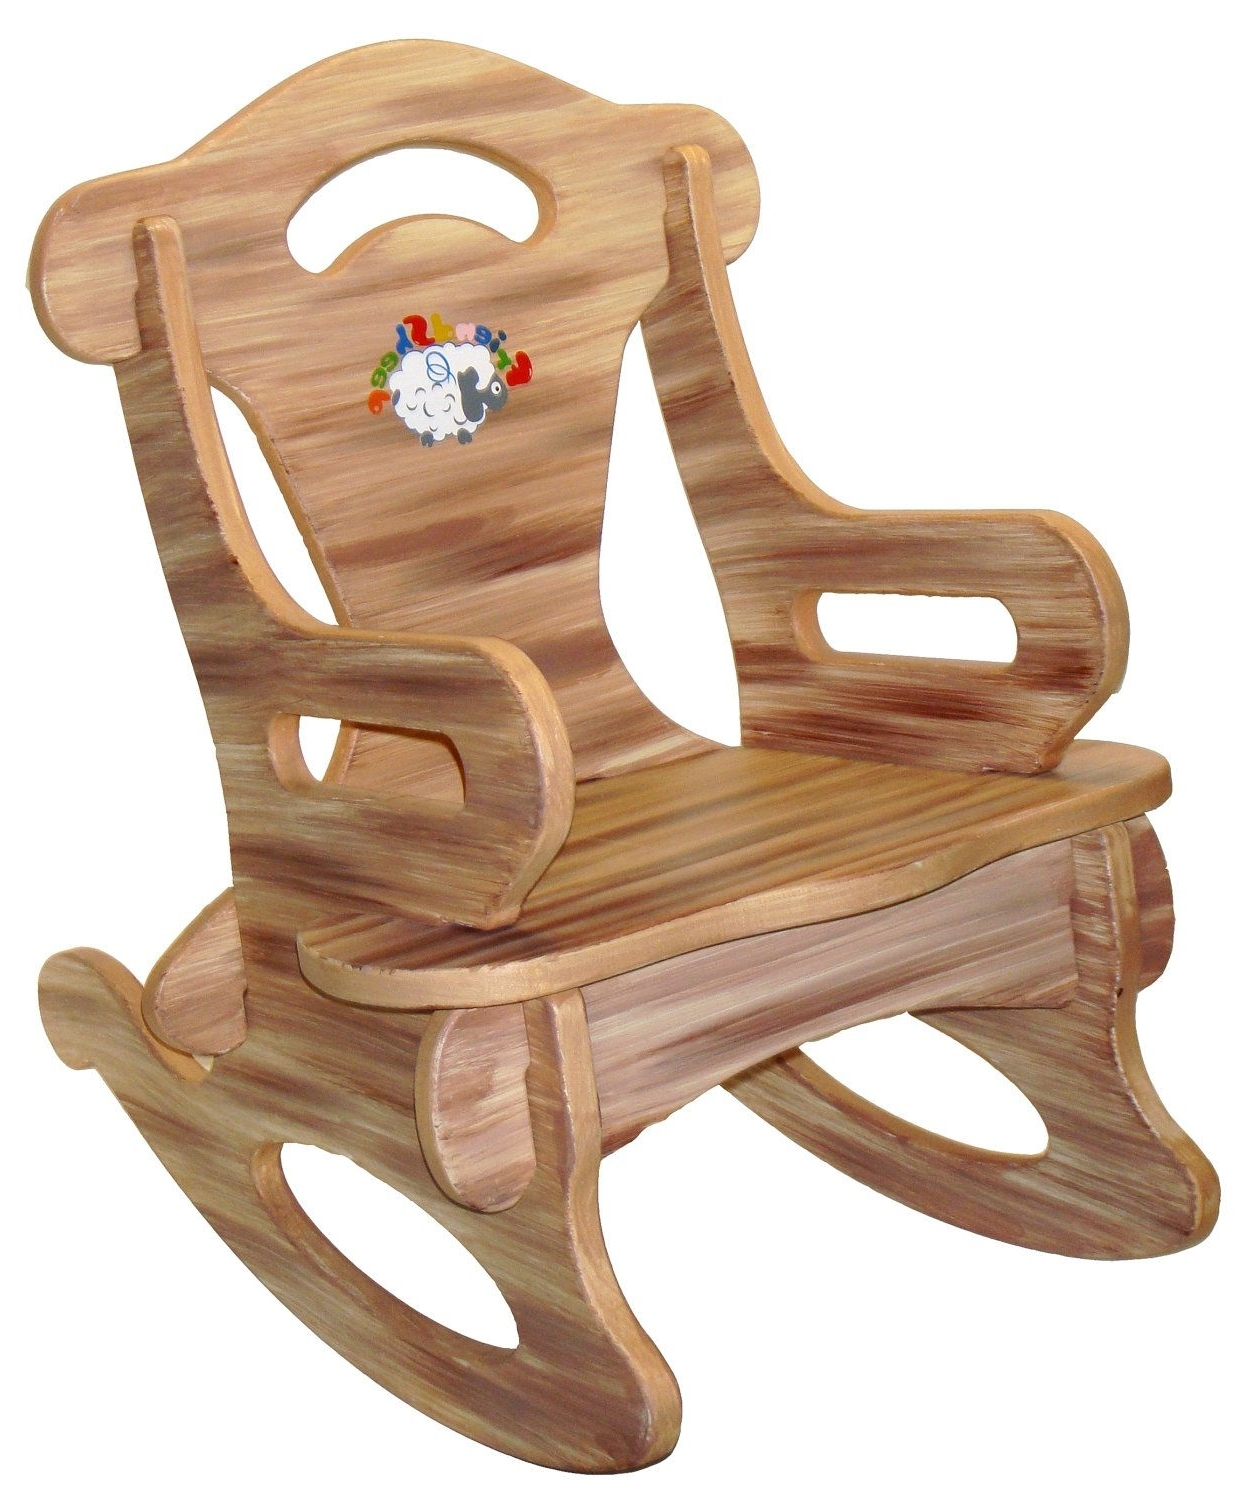 Brown Puzzle Rocker Rocking Chair Solid Wood For Kid, Child, Baby For Trendy Rocking Chairs For Toddlers (View 8 of 20)